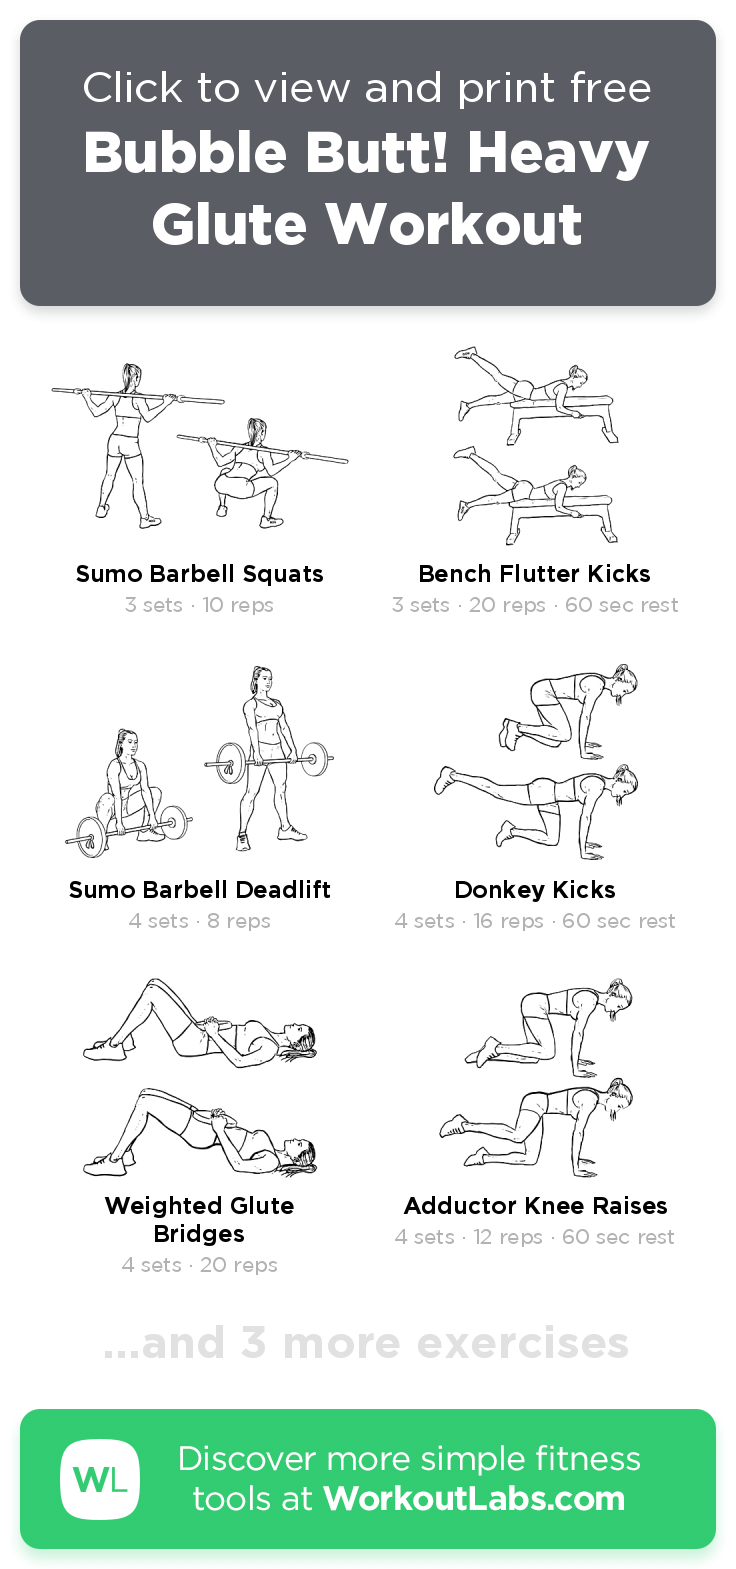 Bubble Butt! Heavy Glute Workout · WorkoutLabs Fit